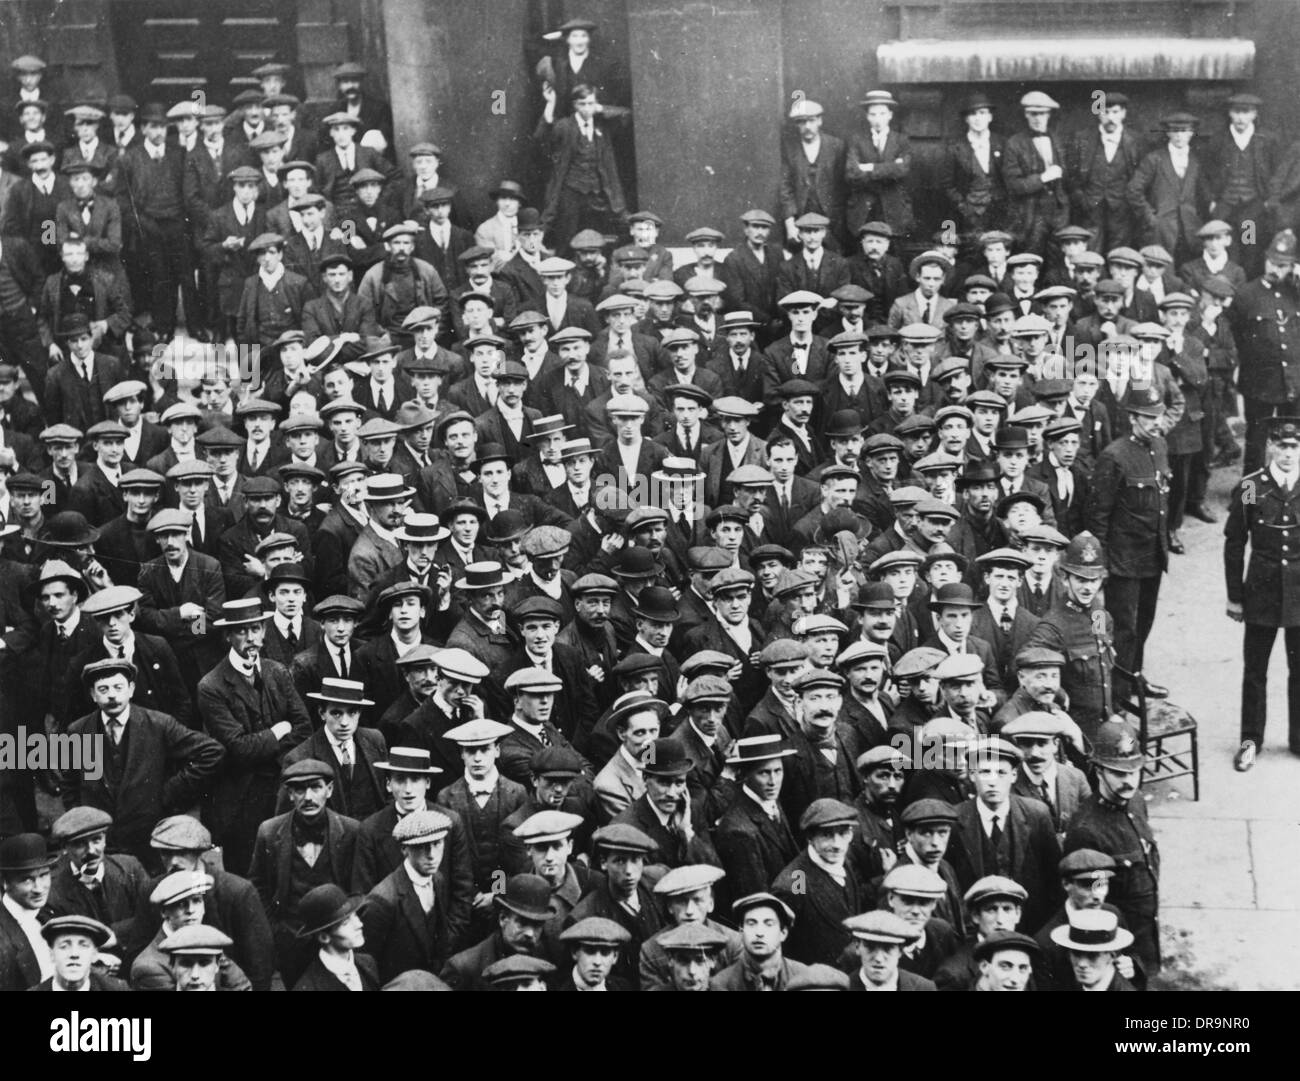 British Army recruits waiting for pay, 1914 - Stock Image